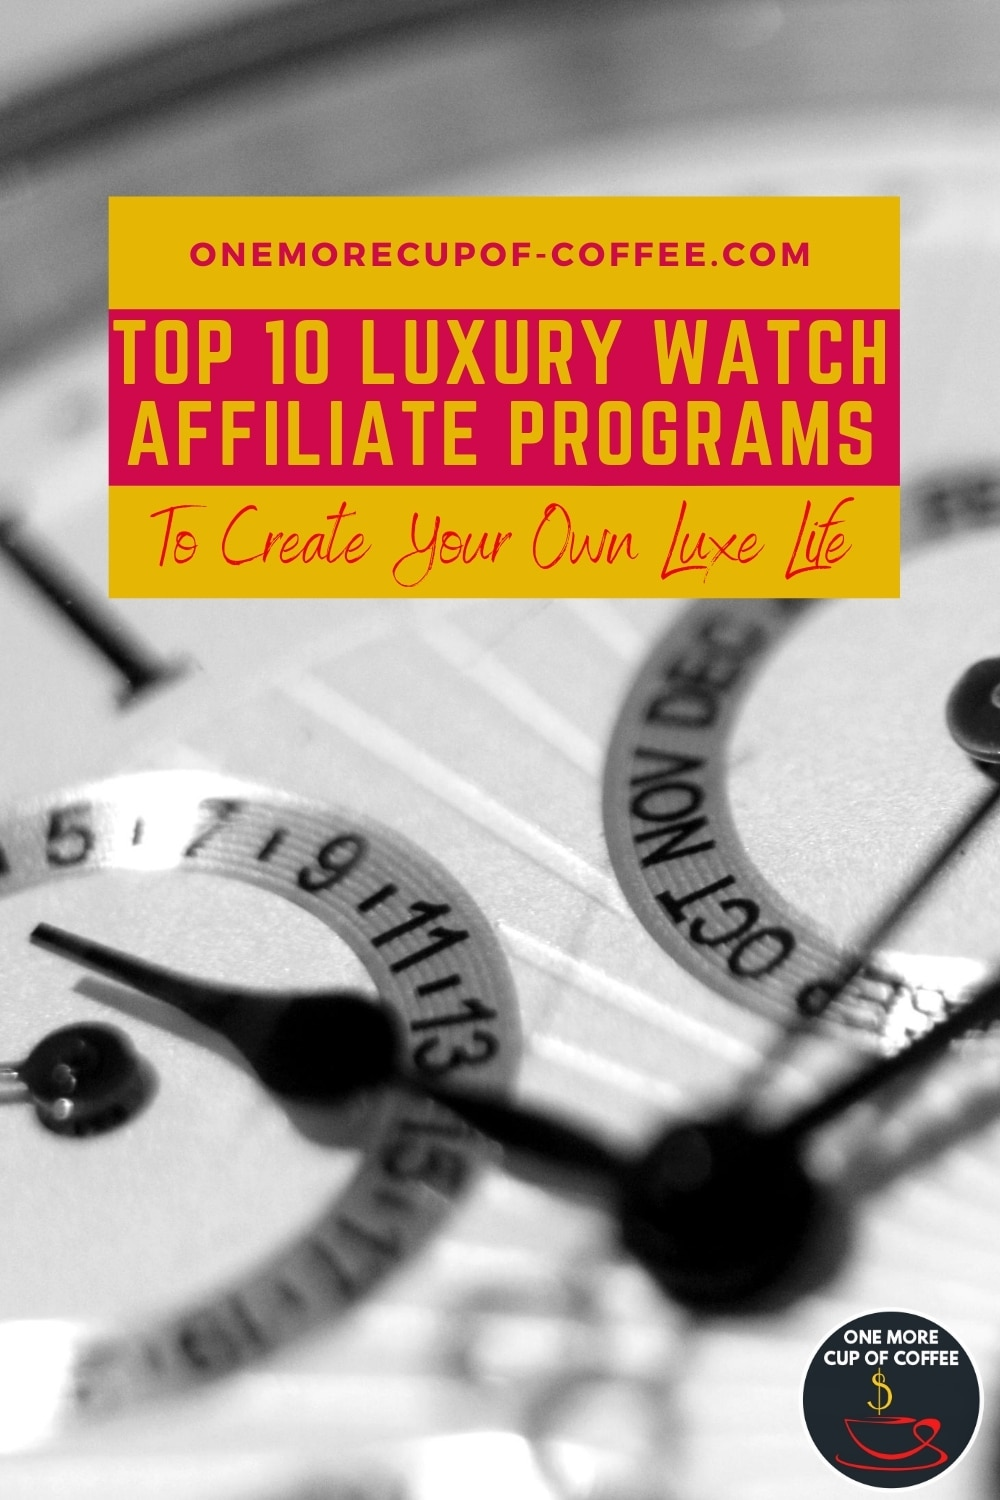 """black and white closeup image of a wrist watch, with text overlay """"Top 10 Luxury Watch Affiliate Programs To Create Your Own Luxe Life"""""""